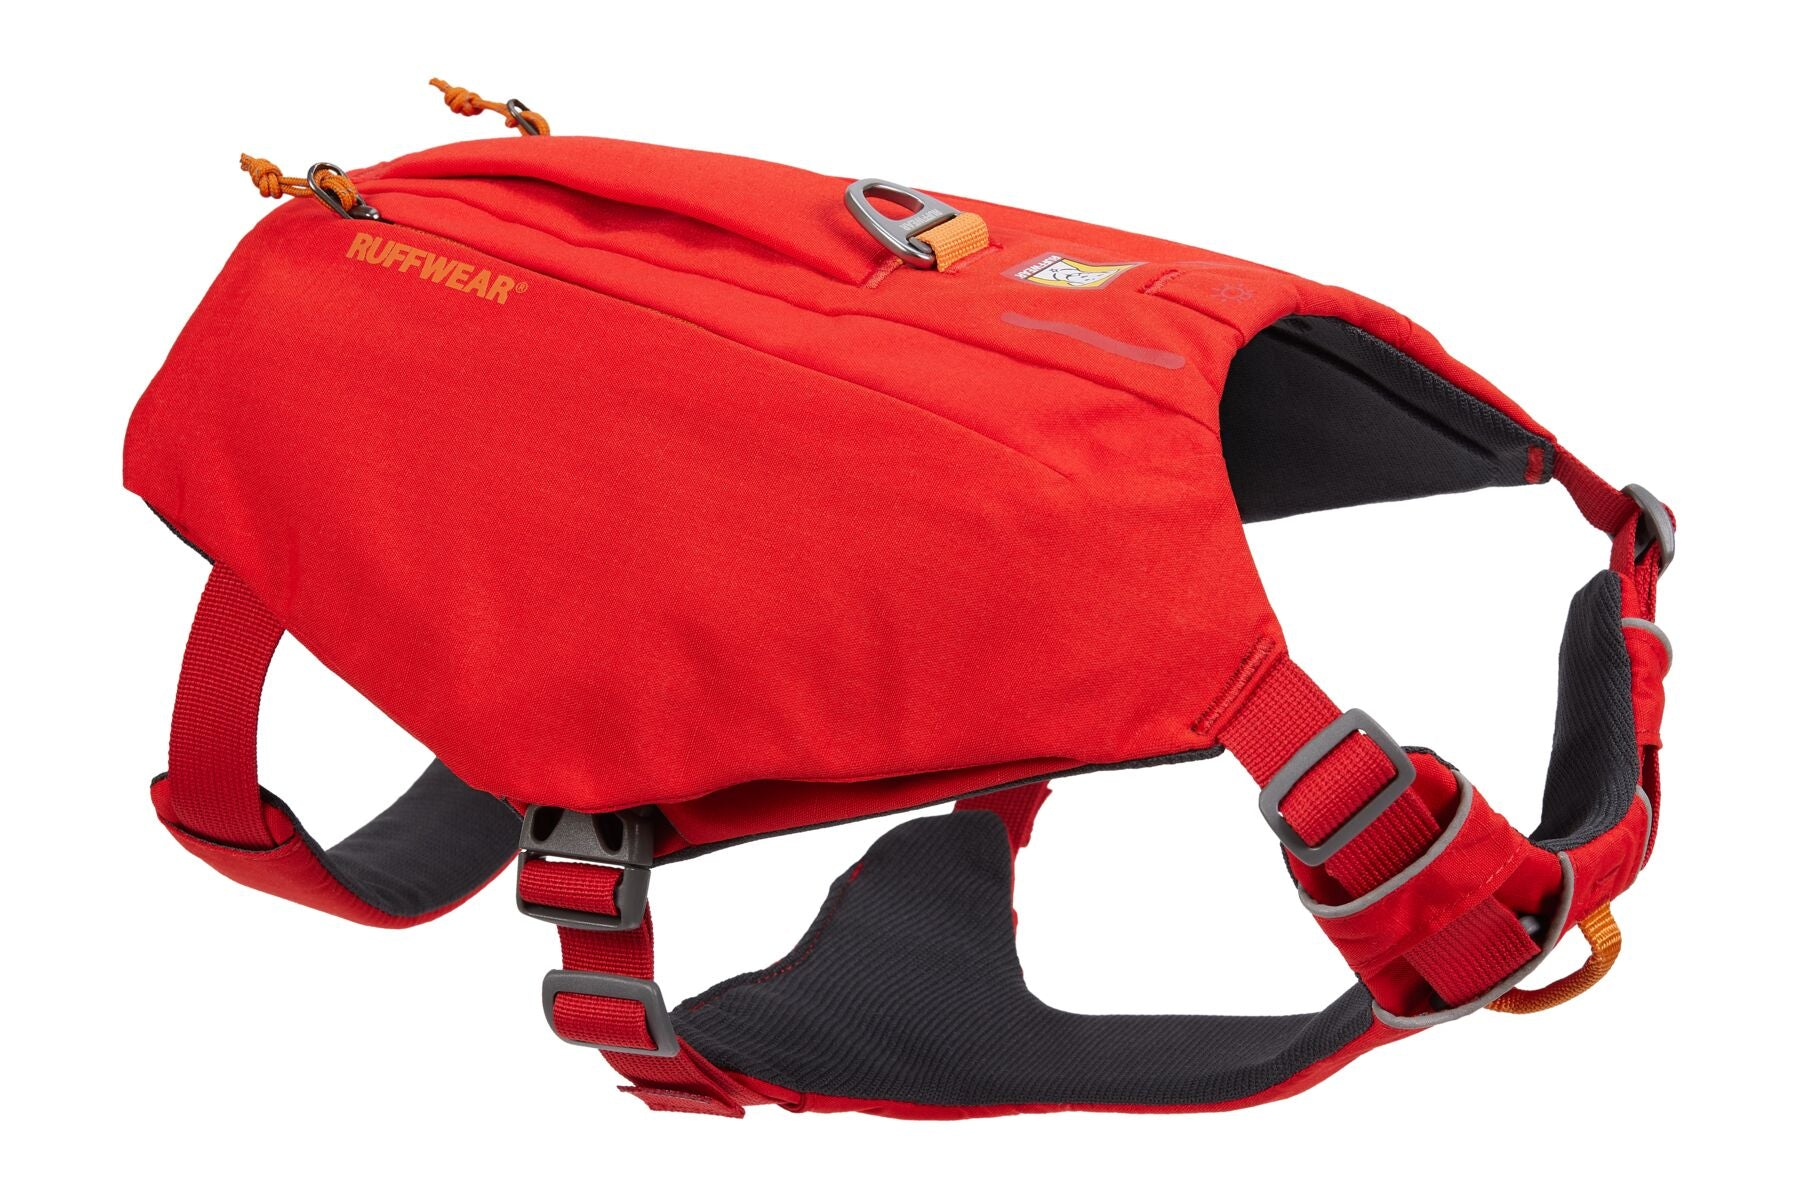 Ruffwear | Switchbak™ Dog Harness w/ Pockets - Red Sumac